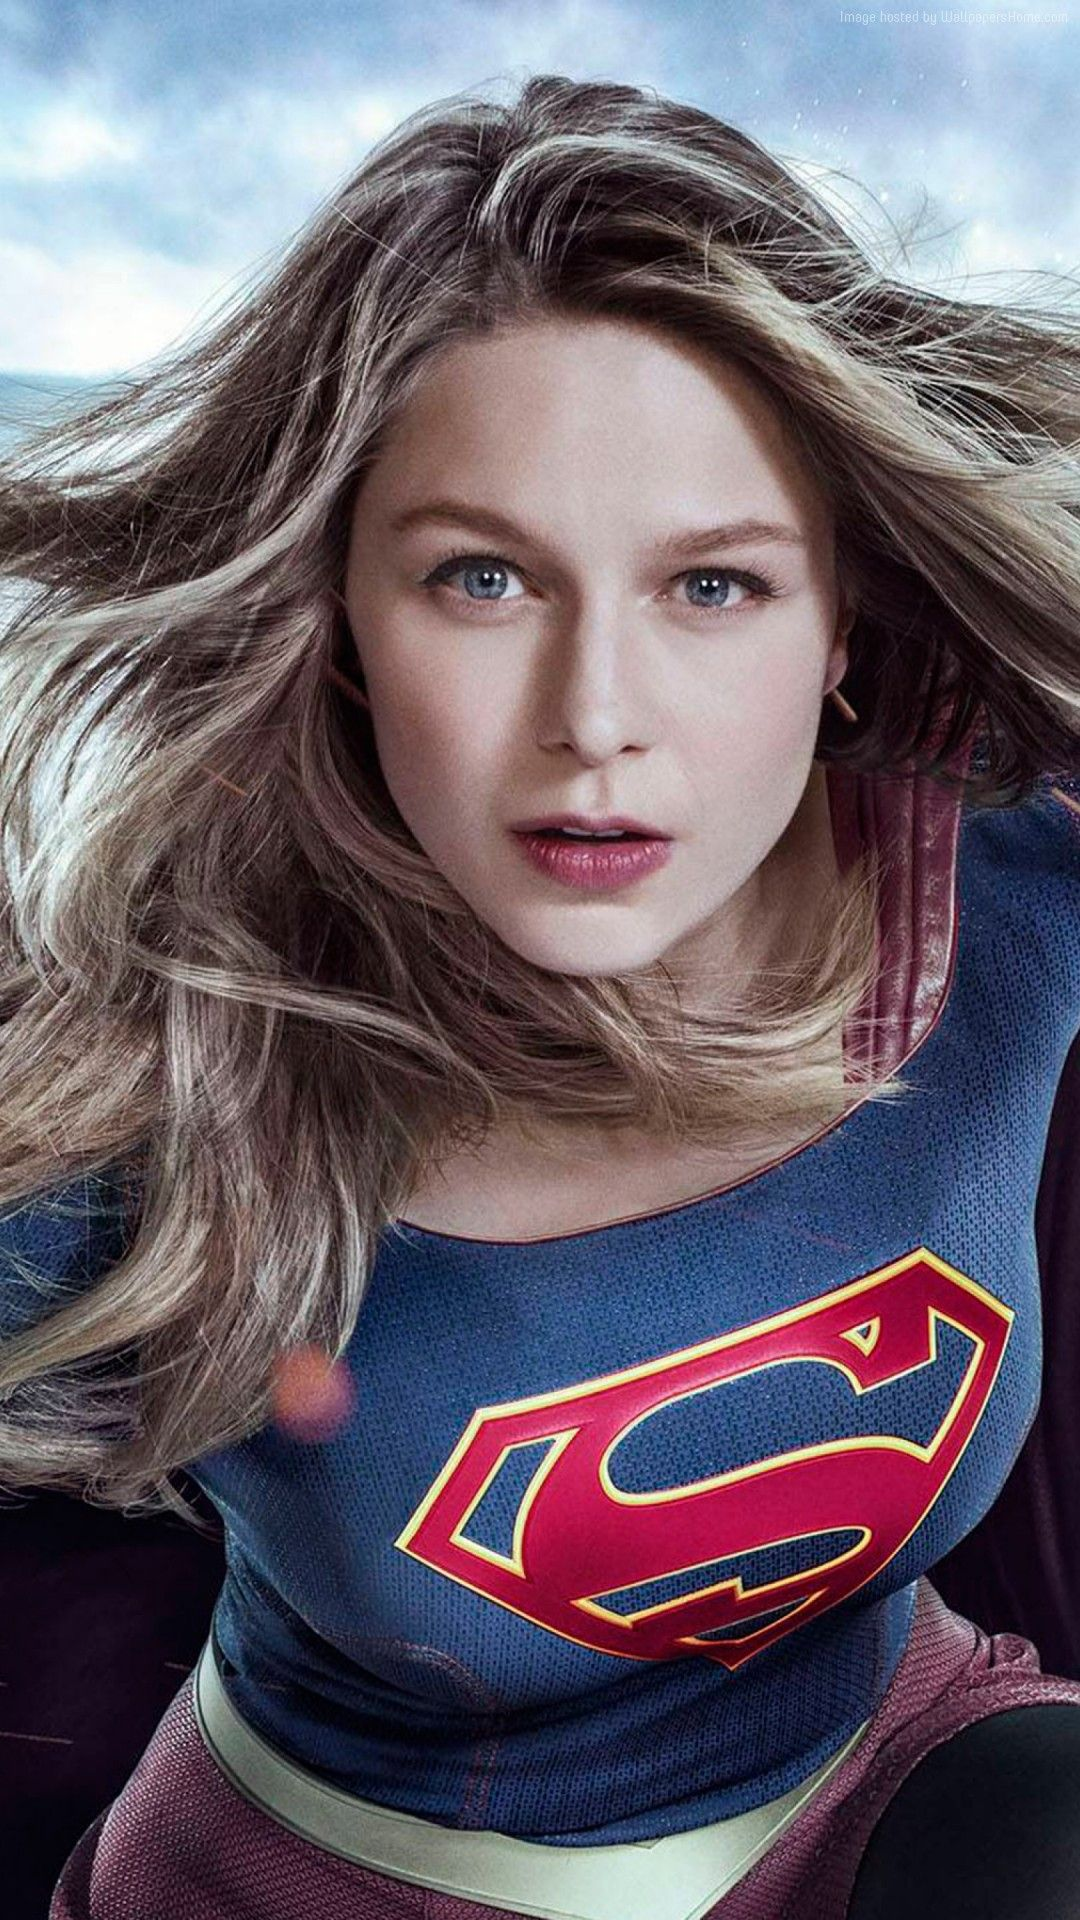 1080x1920 Supergirl Melissa Benoist 2017 - Free HD iPhone Wallpapers | Supers ...